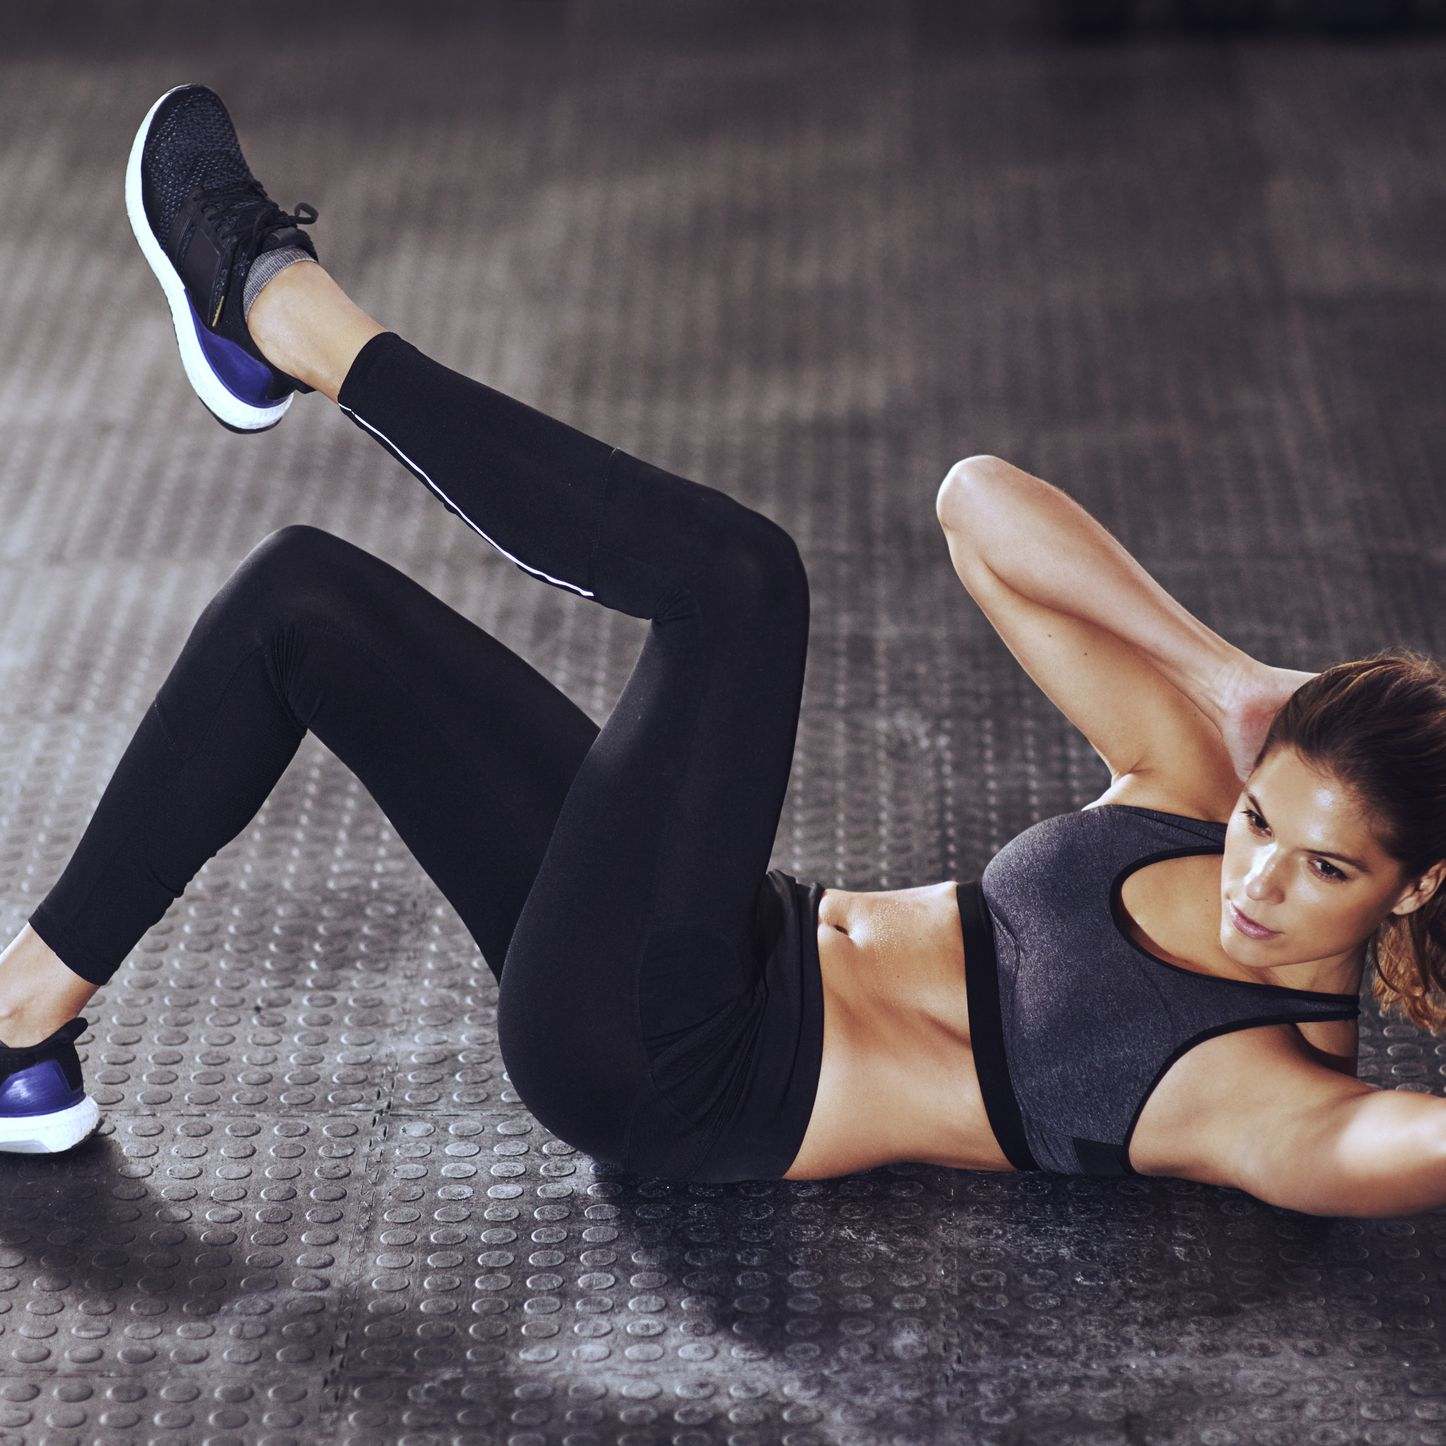 5 Common Myths And A Few Facts About Your Abs